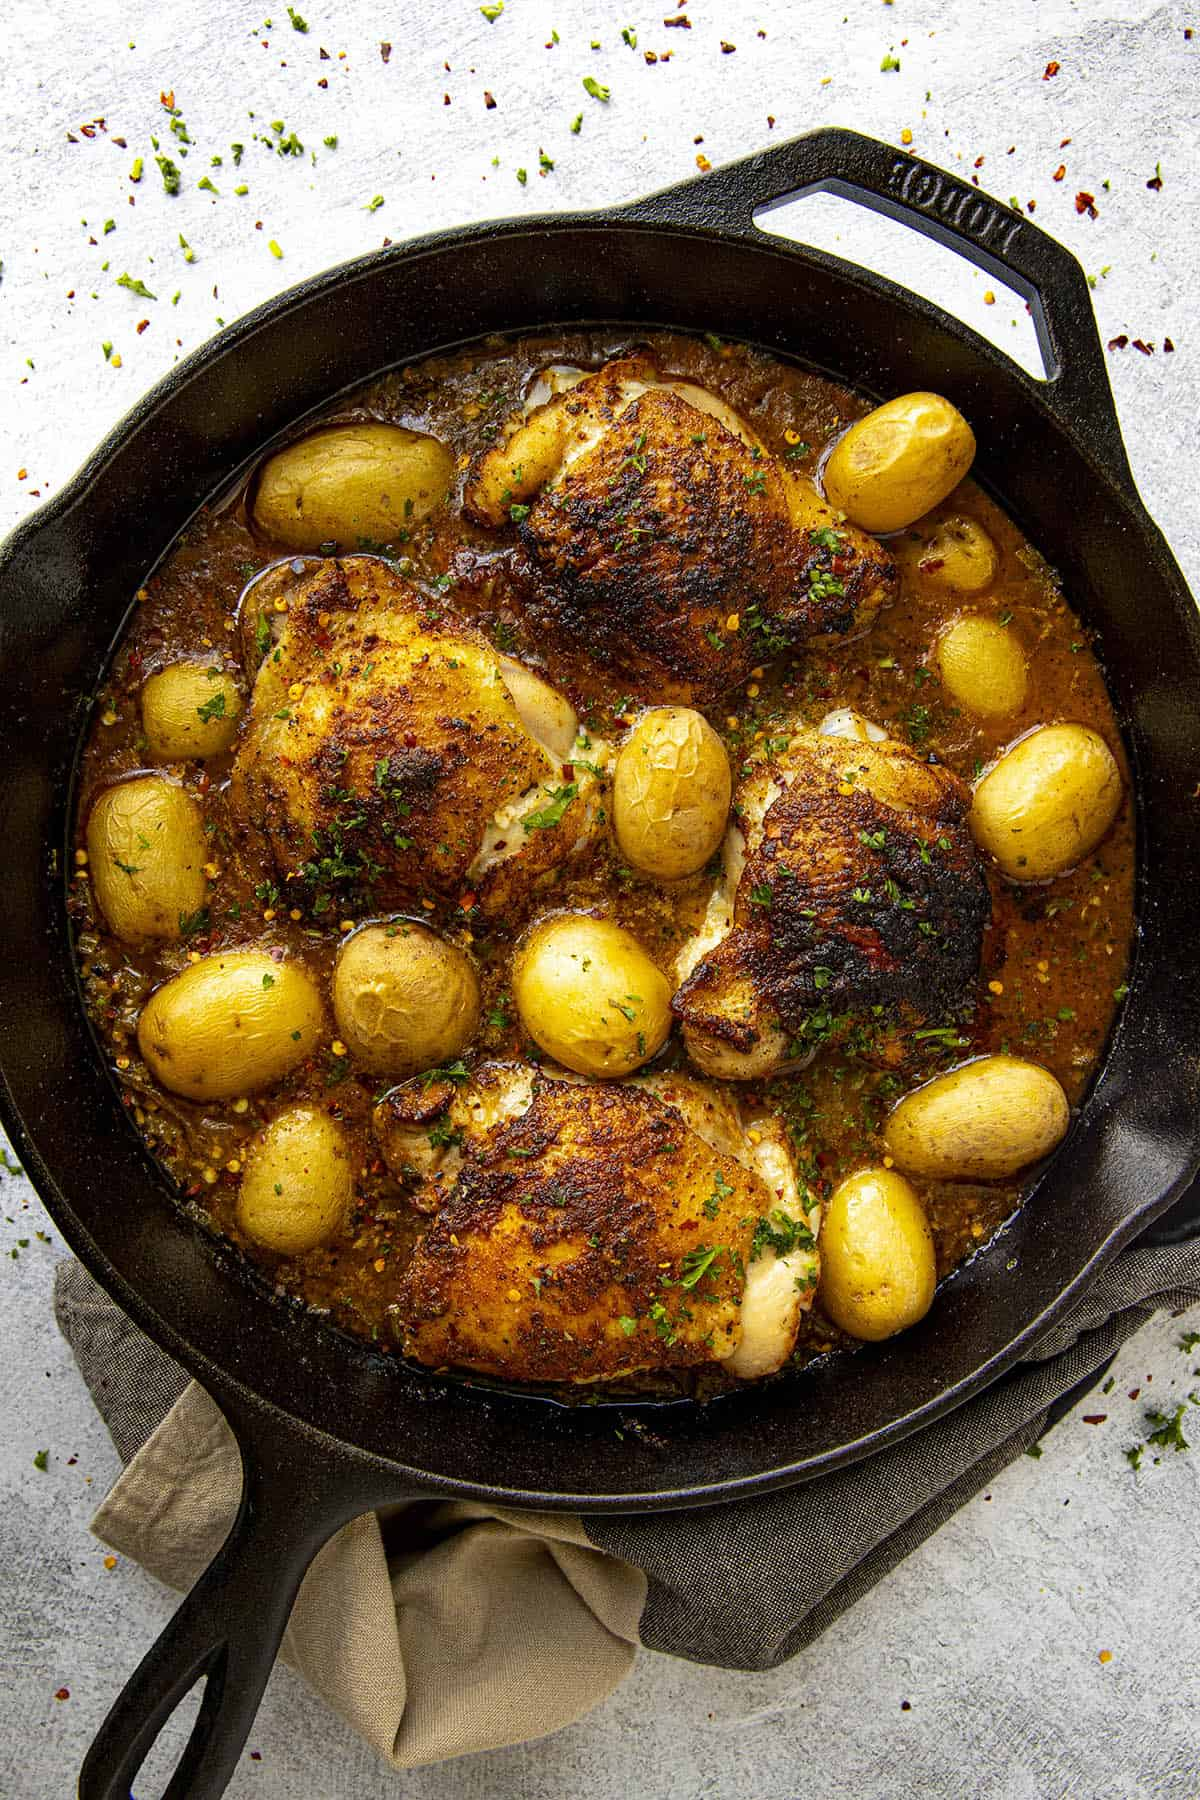 Baked Chicken Thighs in a hot pan with potatoes and lots of Cajun seasonings